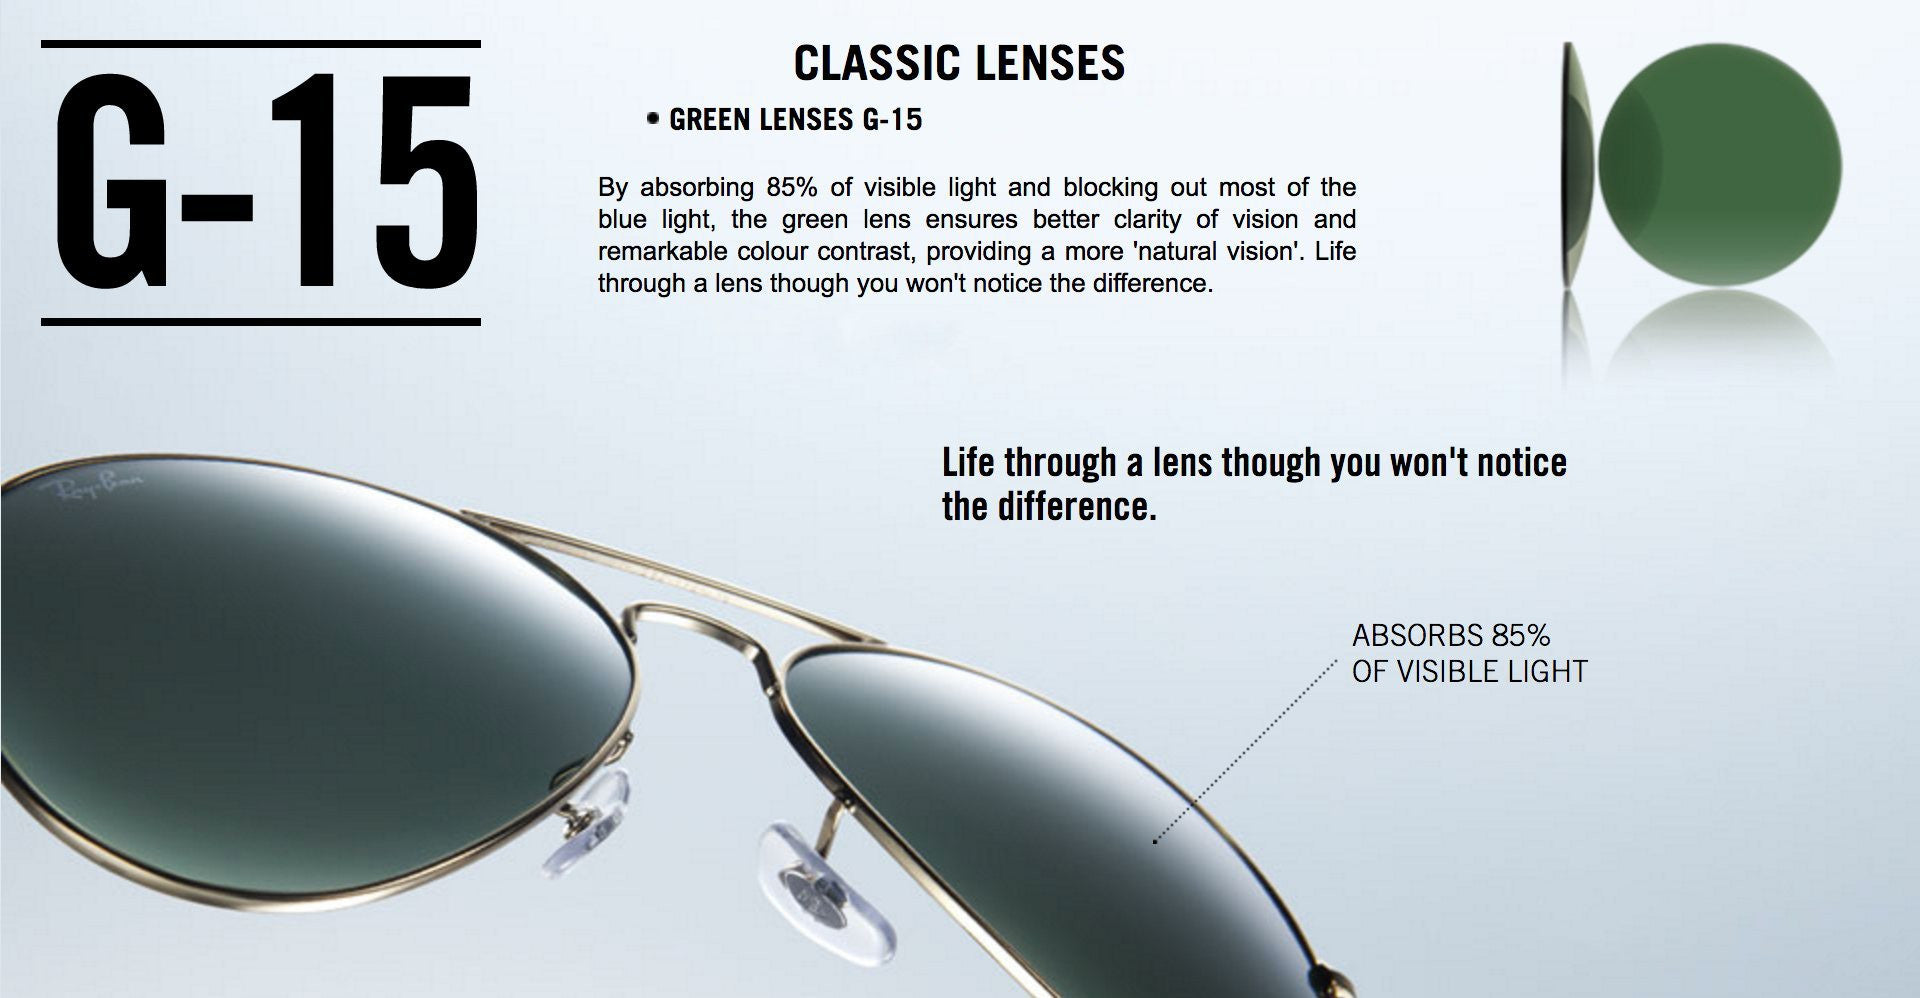 Ray-Ban Green Lenses G-15